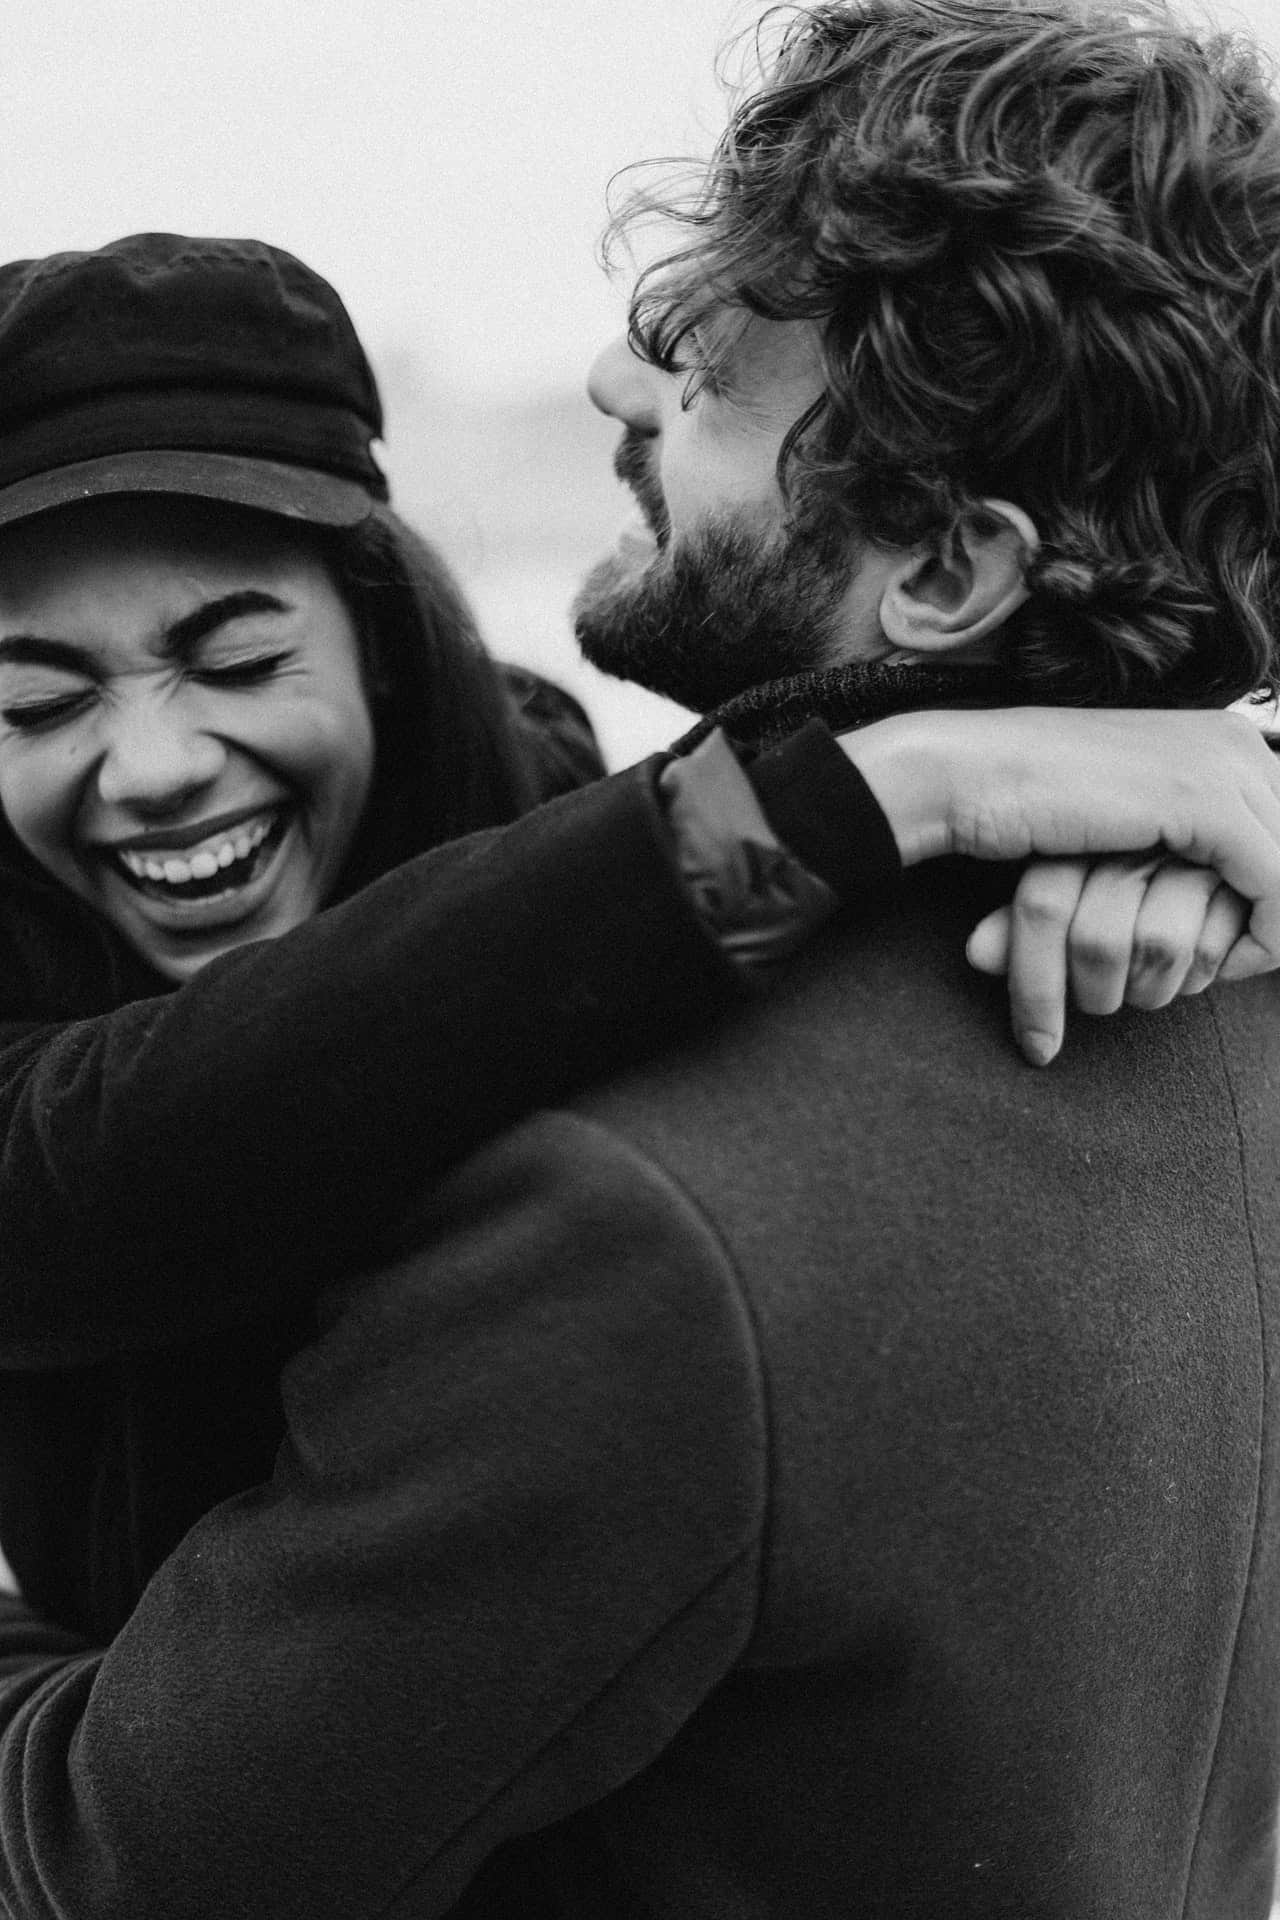 Couple holding each other and laughing together